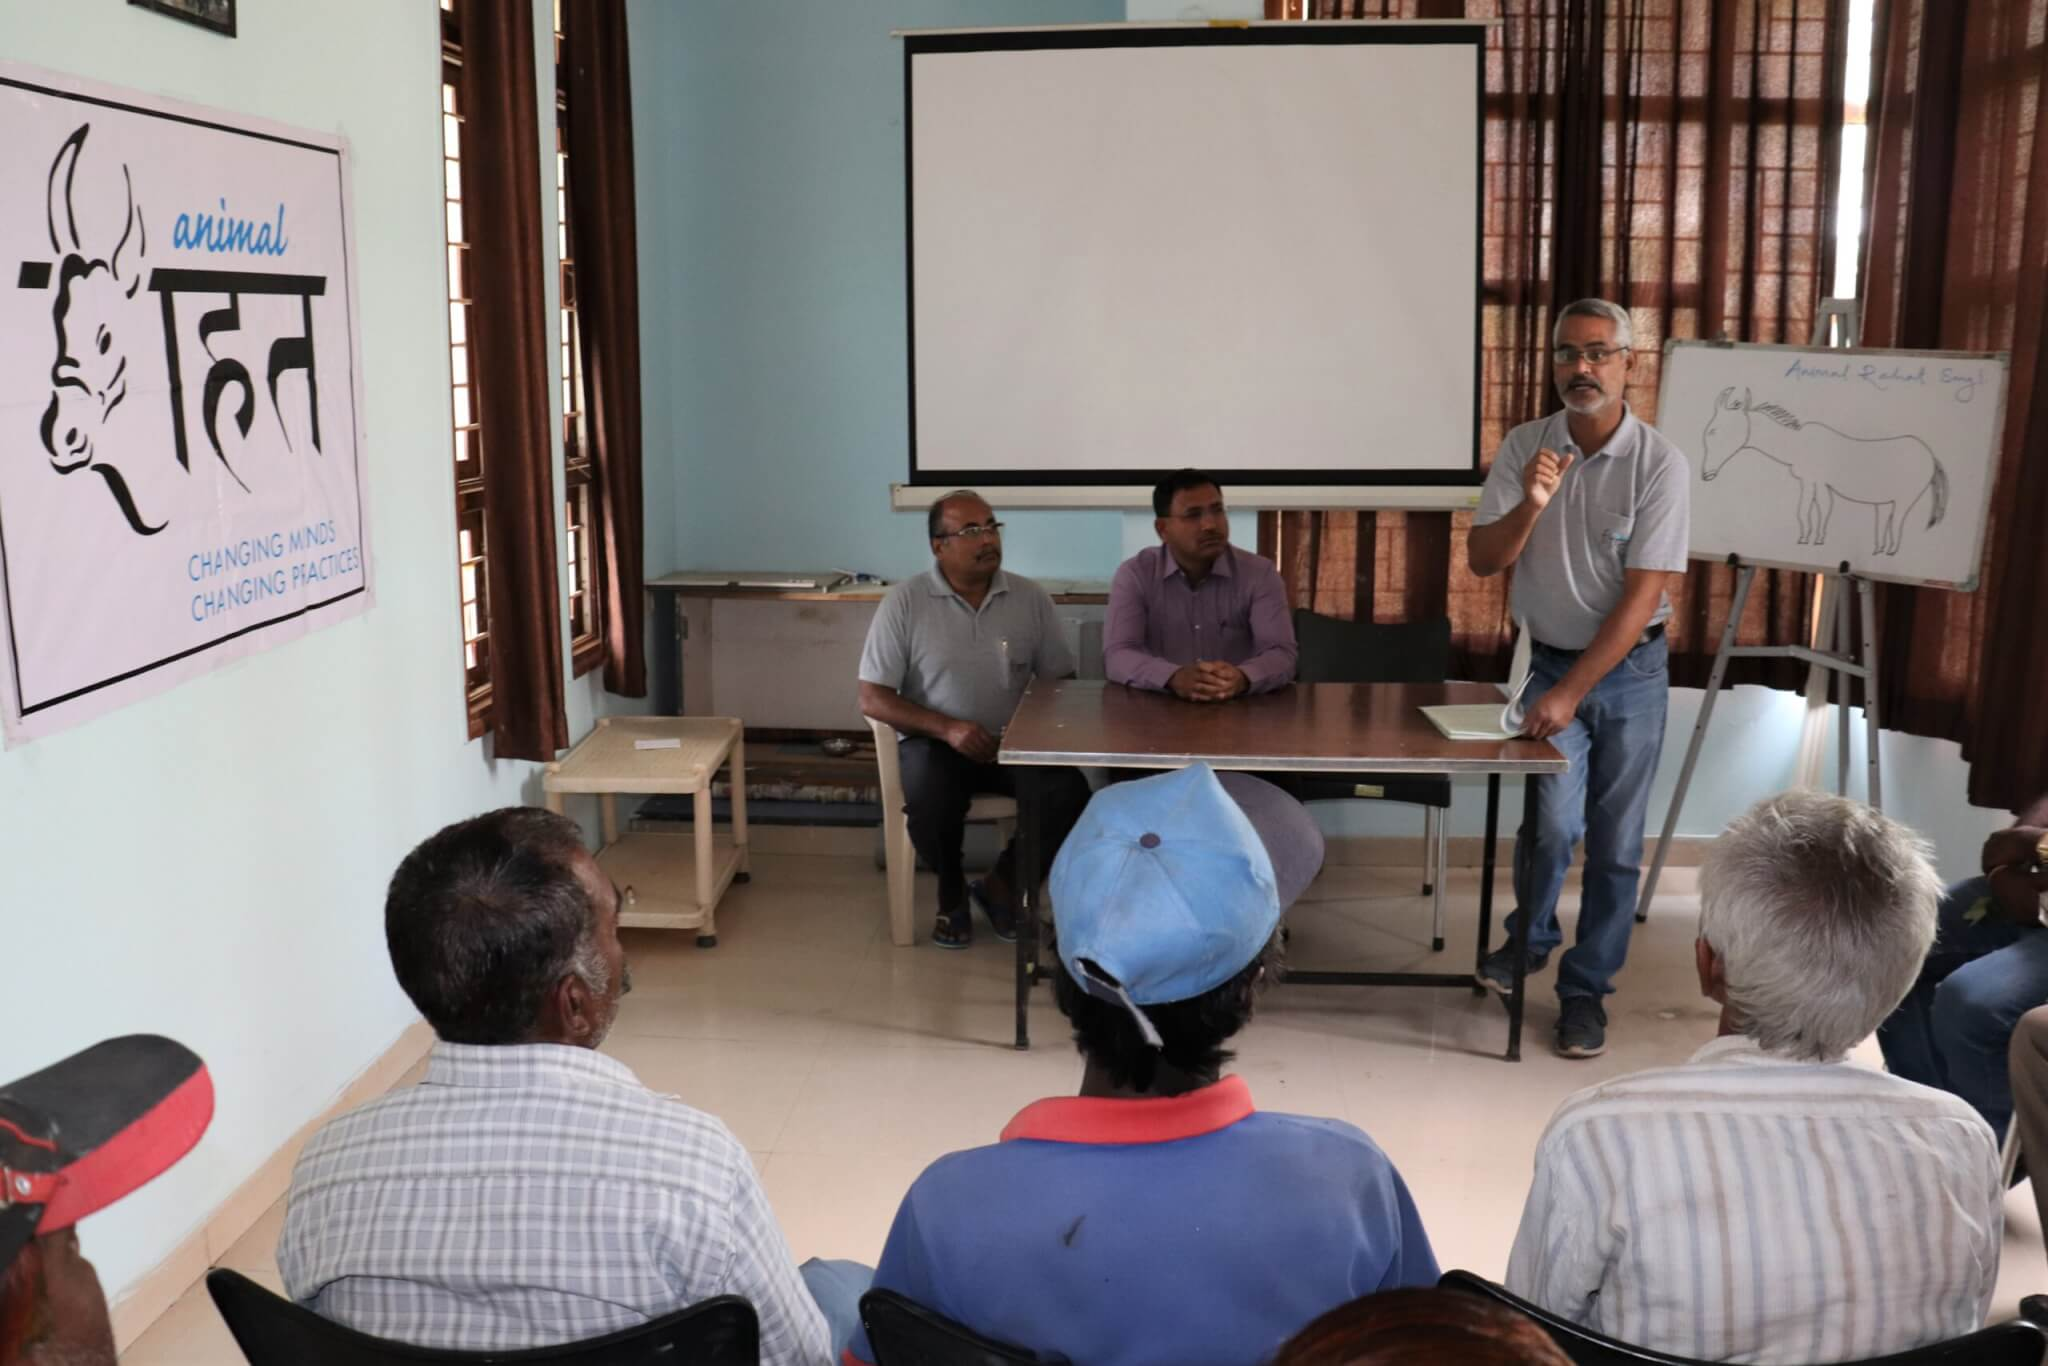 Animal Rahat staffers give a presentation on the importance of mechanizing and how they can help.